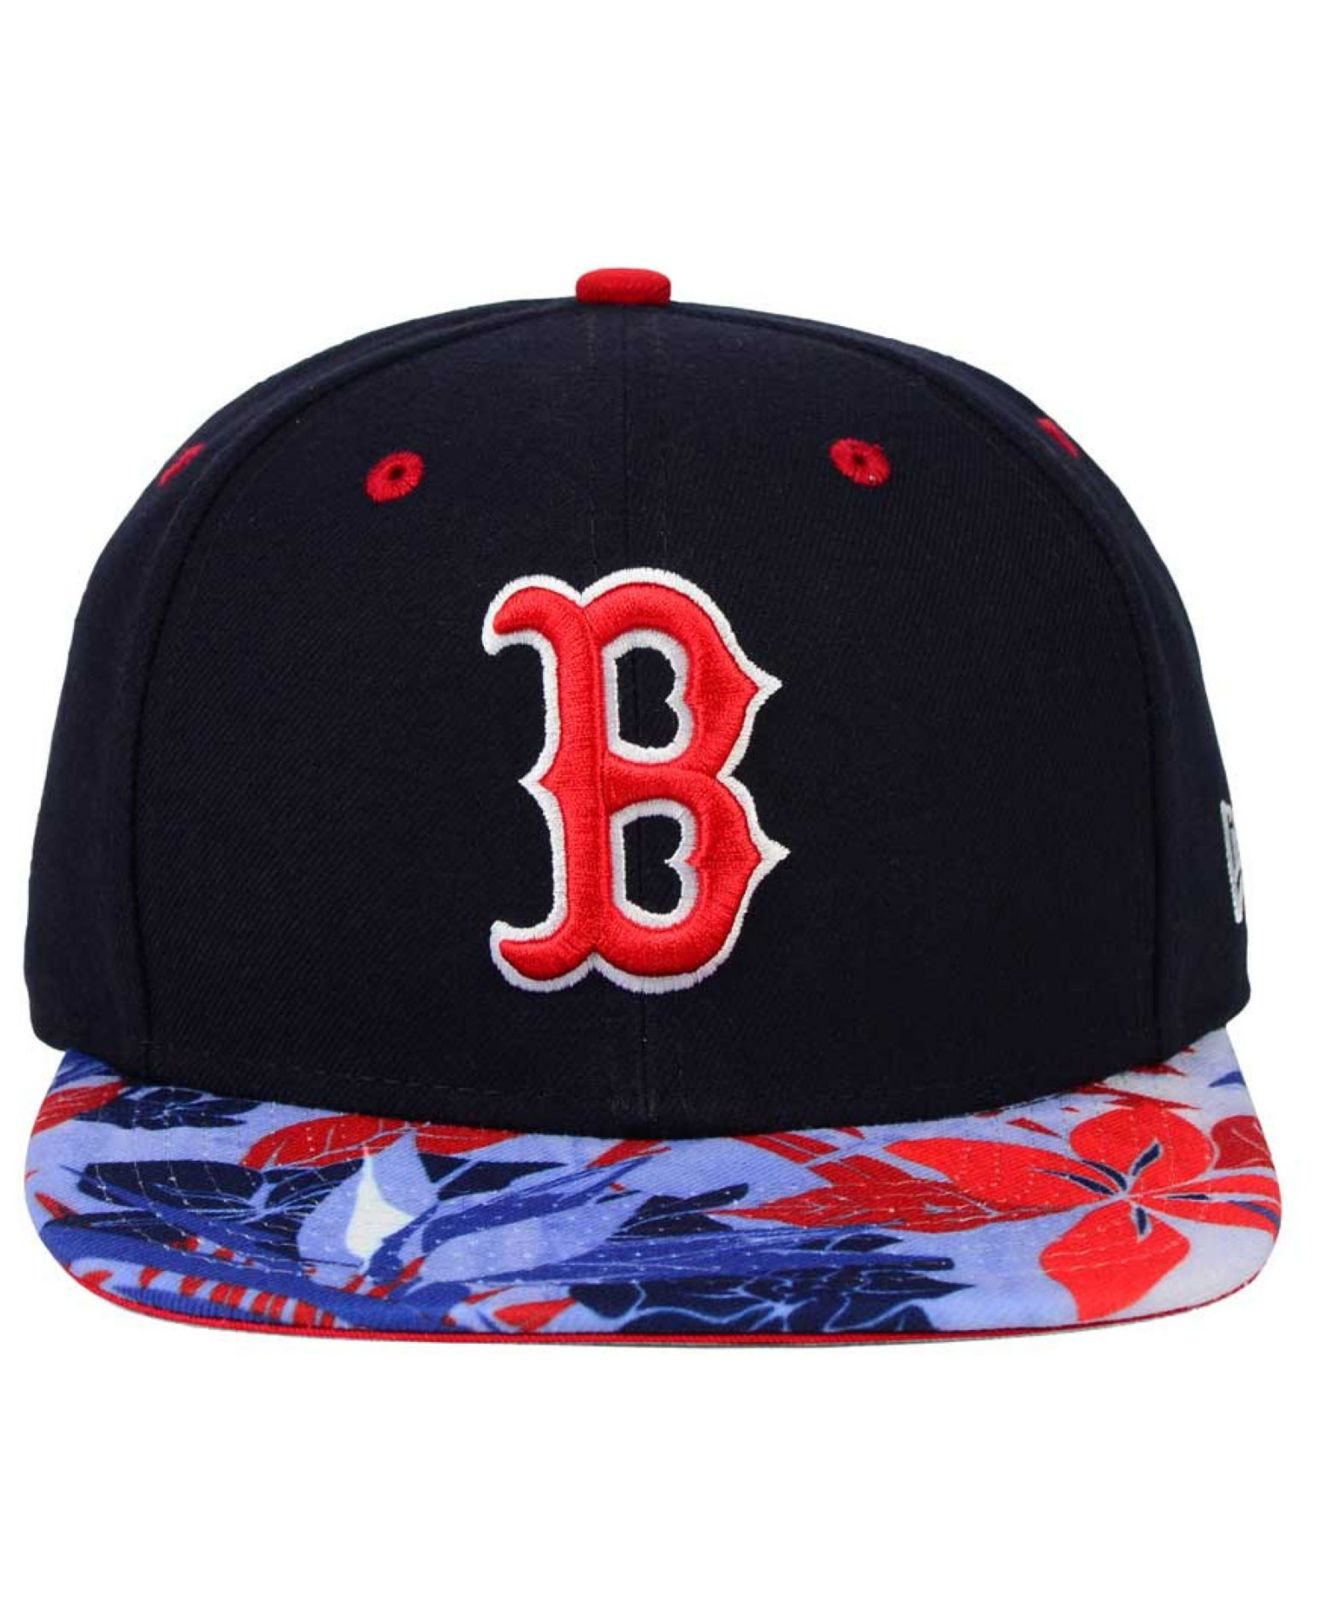 ... low profile dad hat denim hat ball cap 16 12 2fts 16 12 3  lyst ktz  boston red sox floral viz 9fifty snapback cap in blue for men 758f7cc97